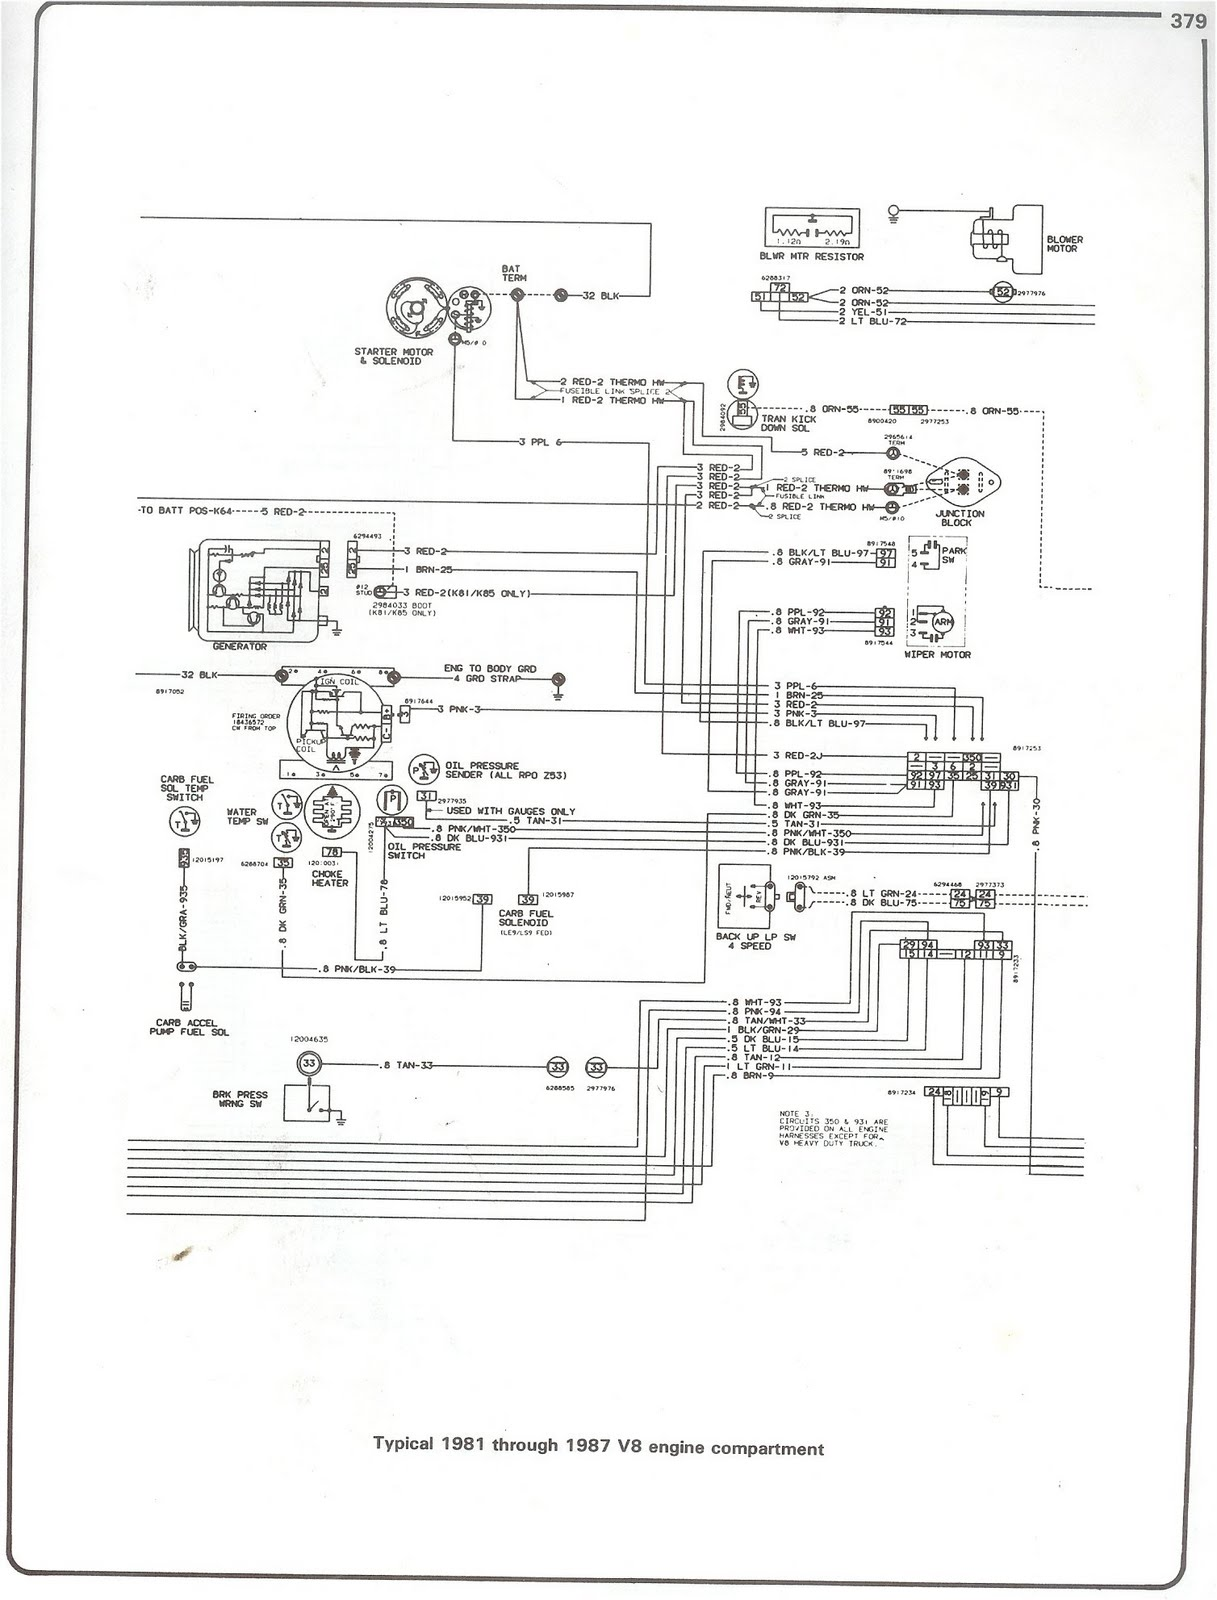 hight resolution of 1978 chevy truck wiring harness data diagram schematic 1978 chevy truck wiring harness